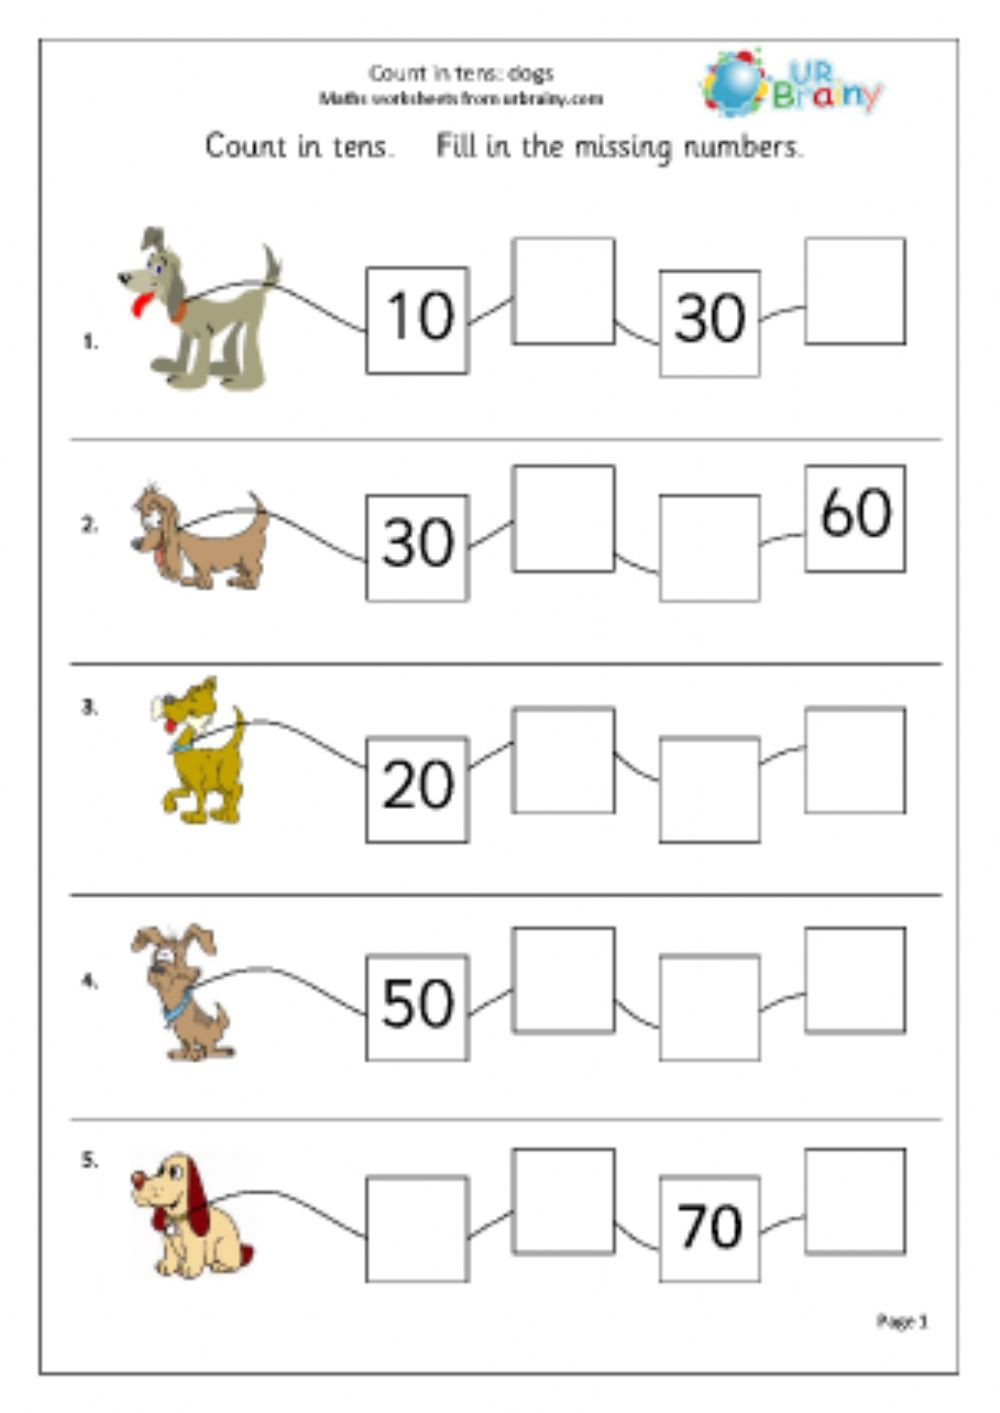 Counting In 10s Worksheet Counting On In 10s Interactive Worksheet